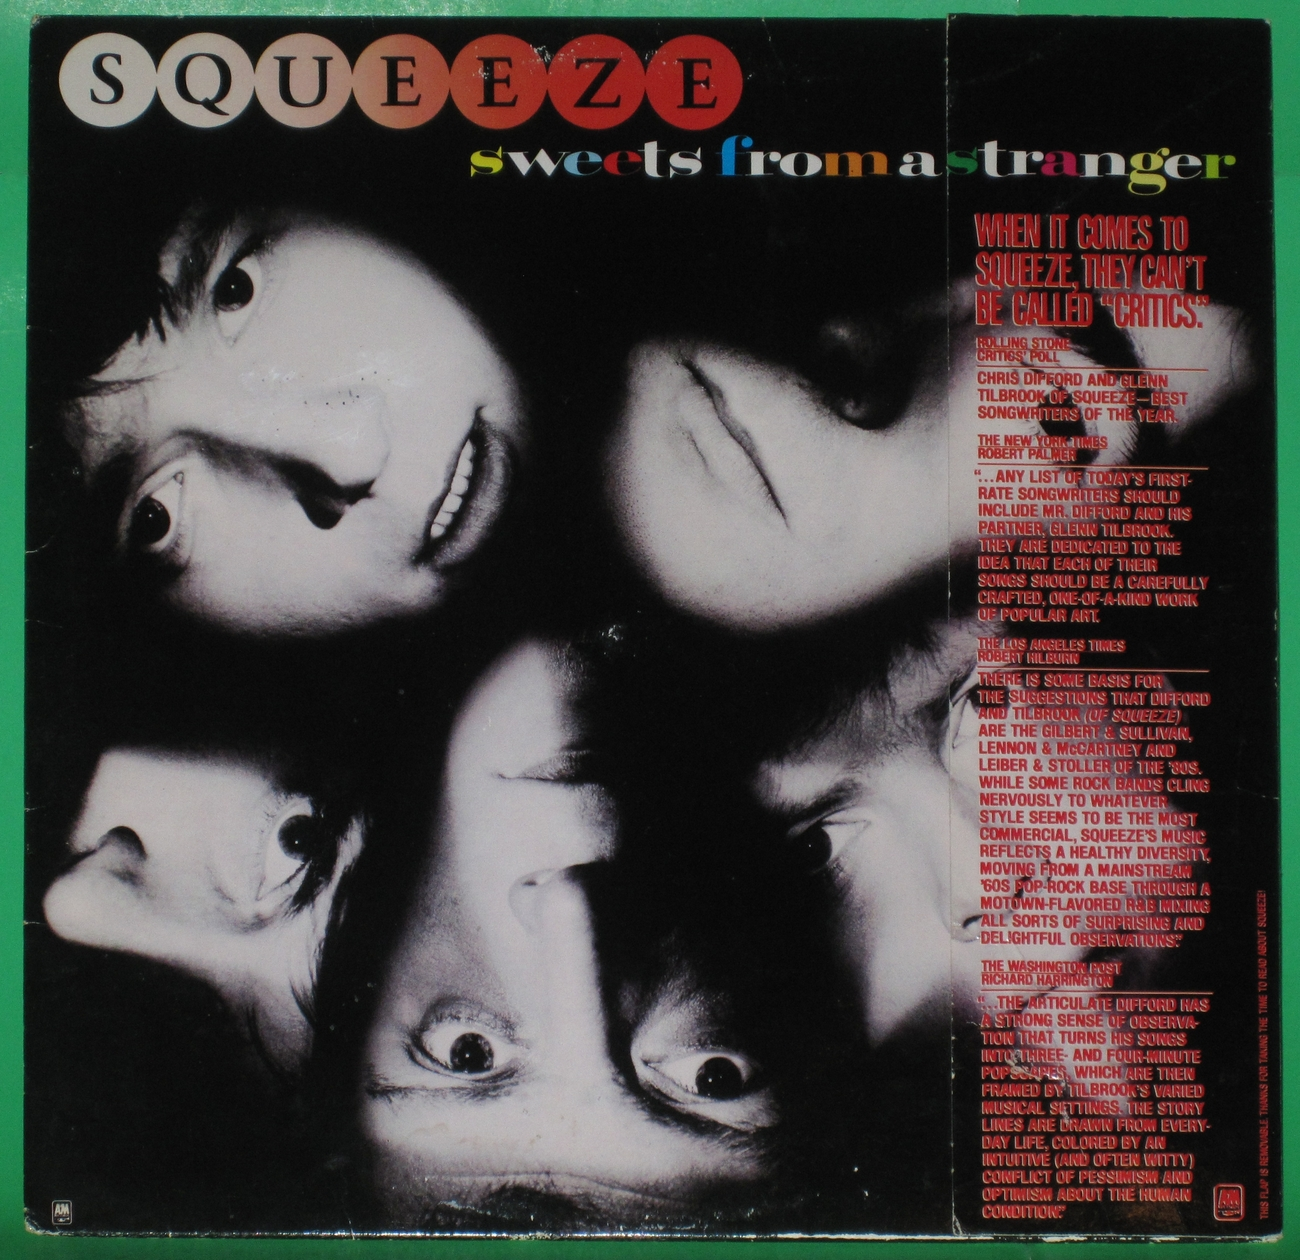 Squeeze - Sweets From a Stranger Vinyl